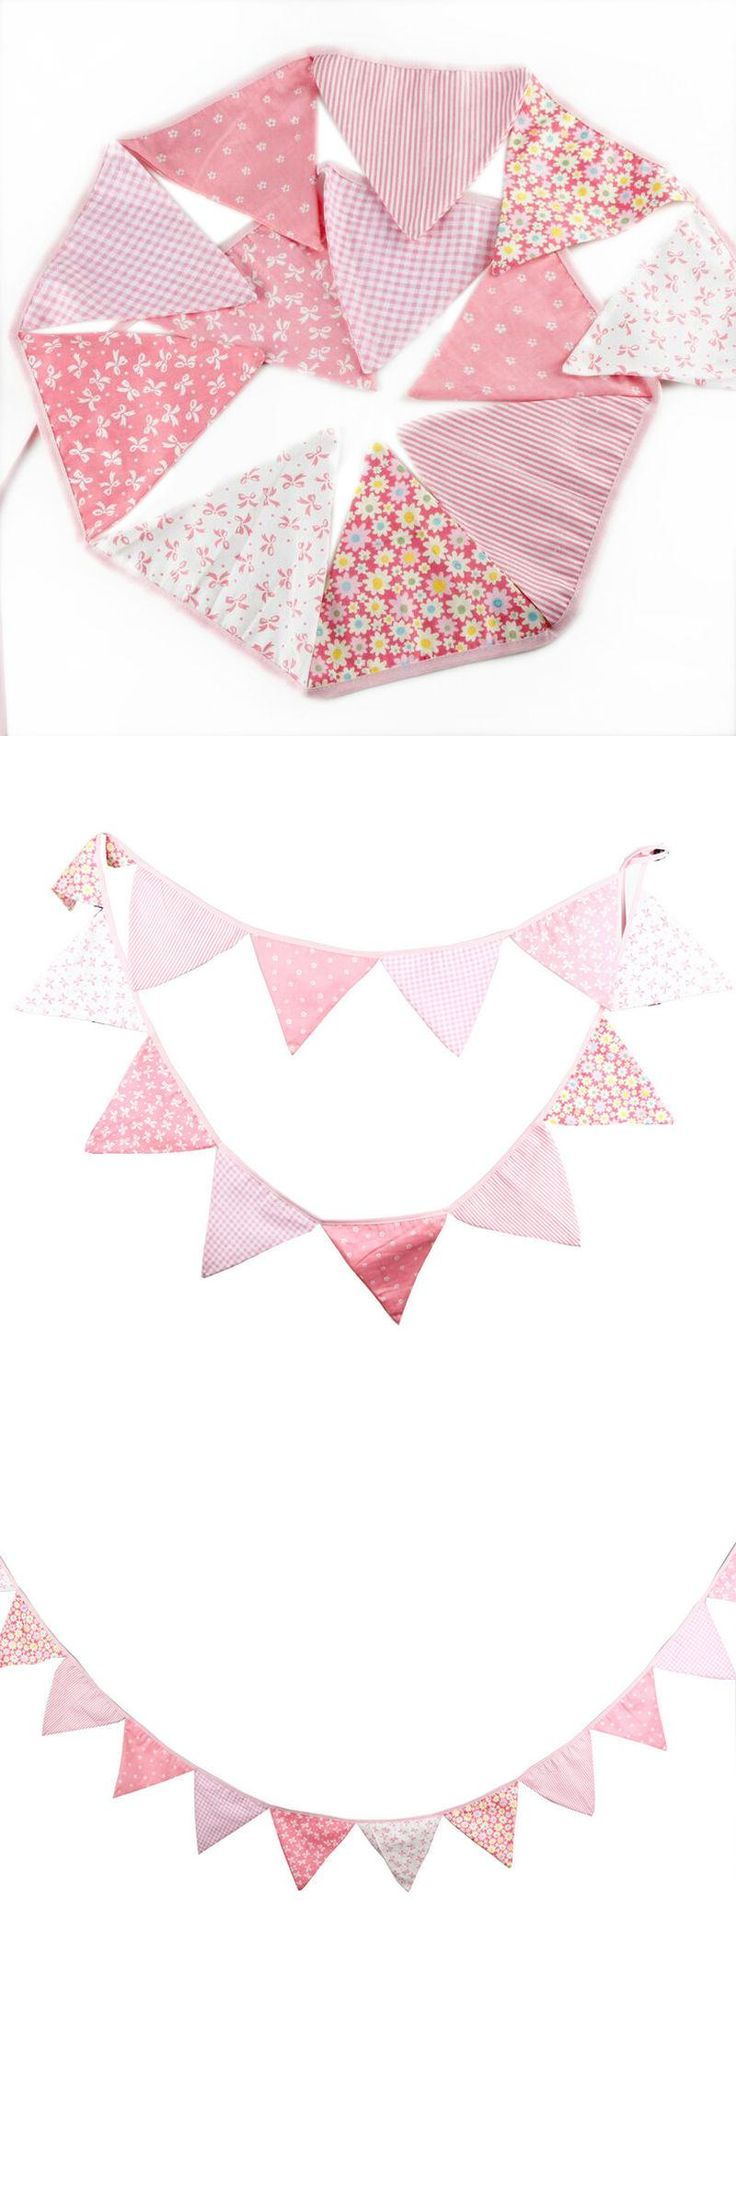 3.3 m Multicolor Handmade 12 flags Bunting Double side Fabric Flag Banner Garland Wedding Party Decoration event party supplies